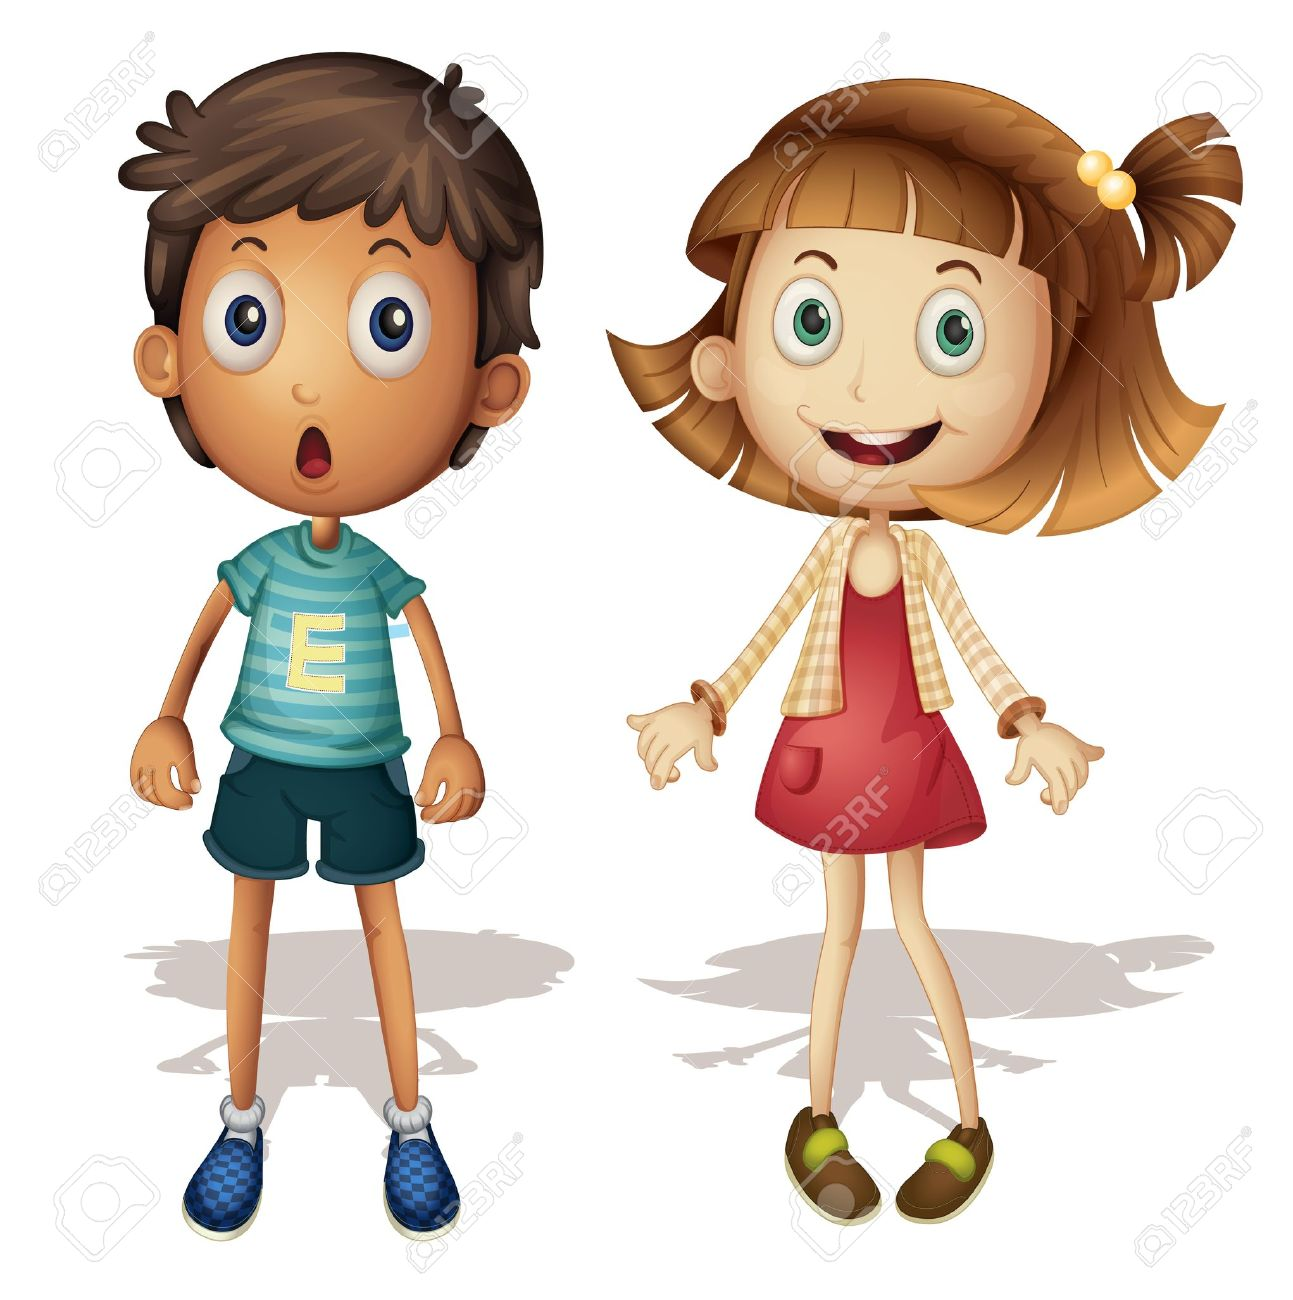 Illustration of a young girl and boy Stock Vector - 13988340